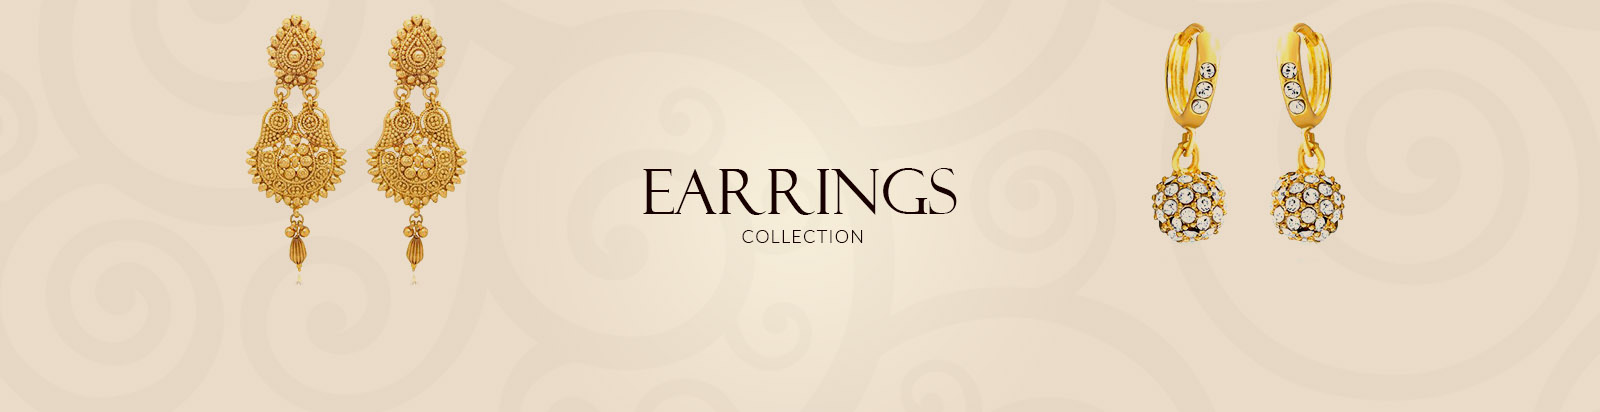 Gold Earrings line Shopping